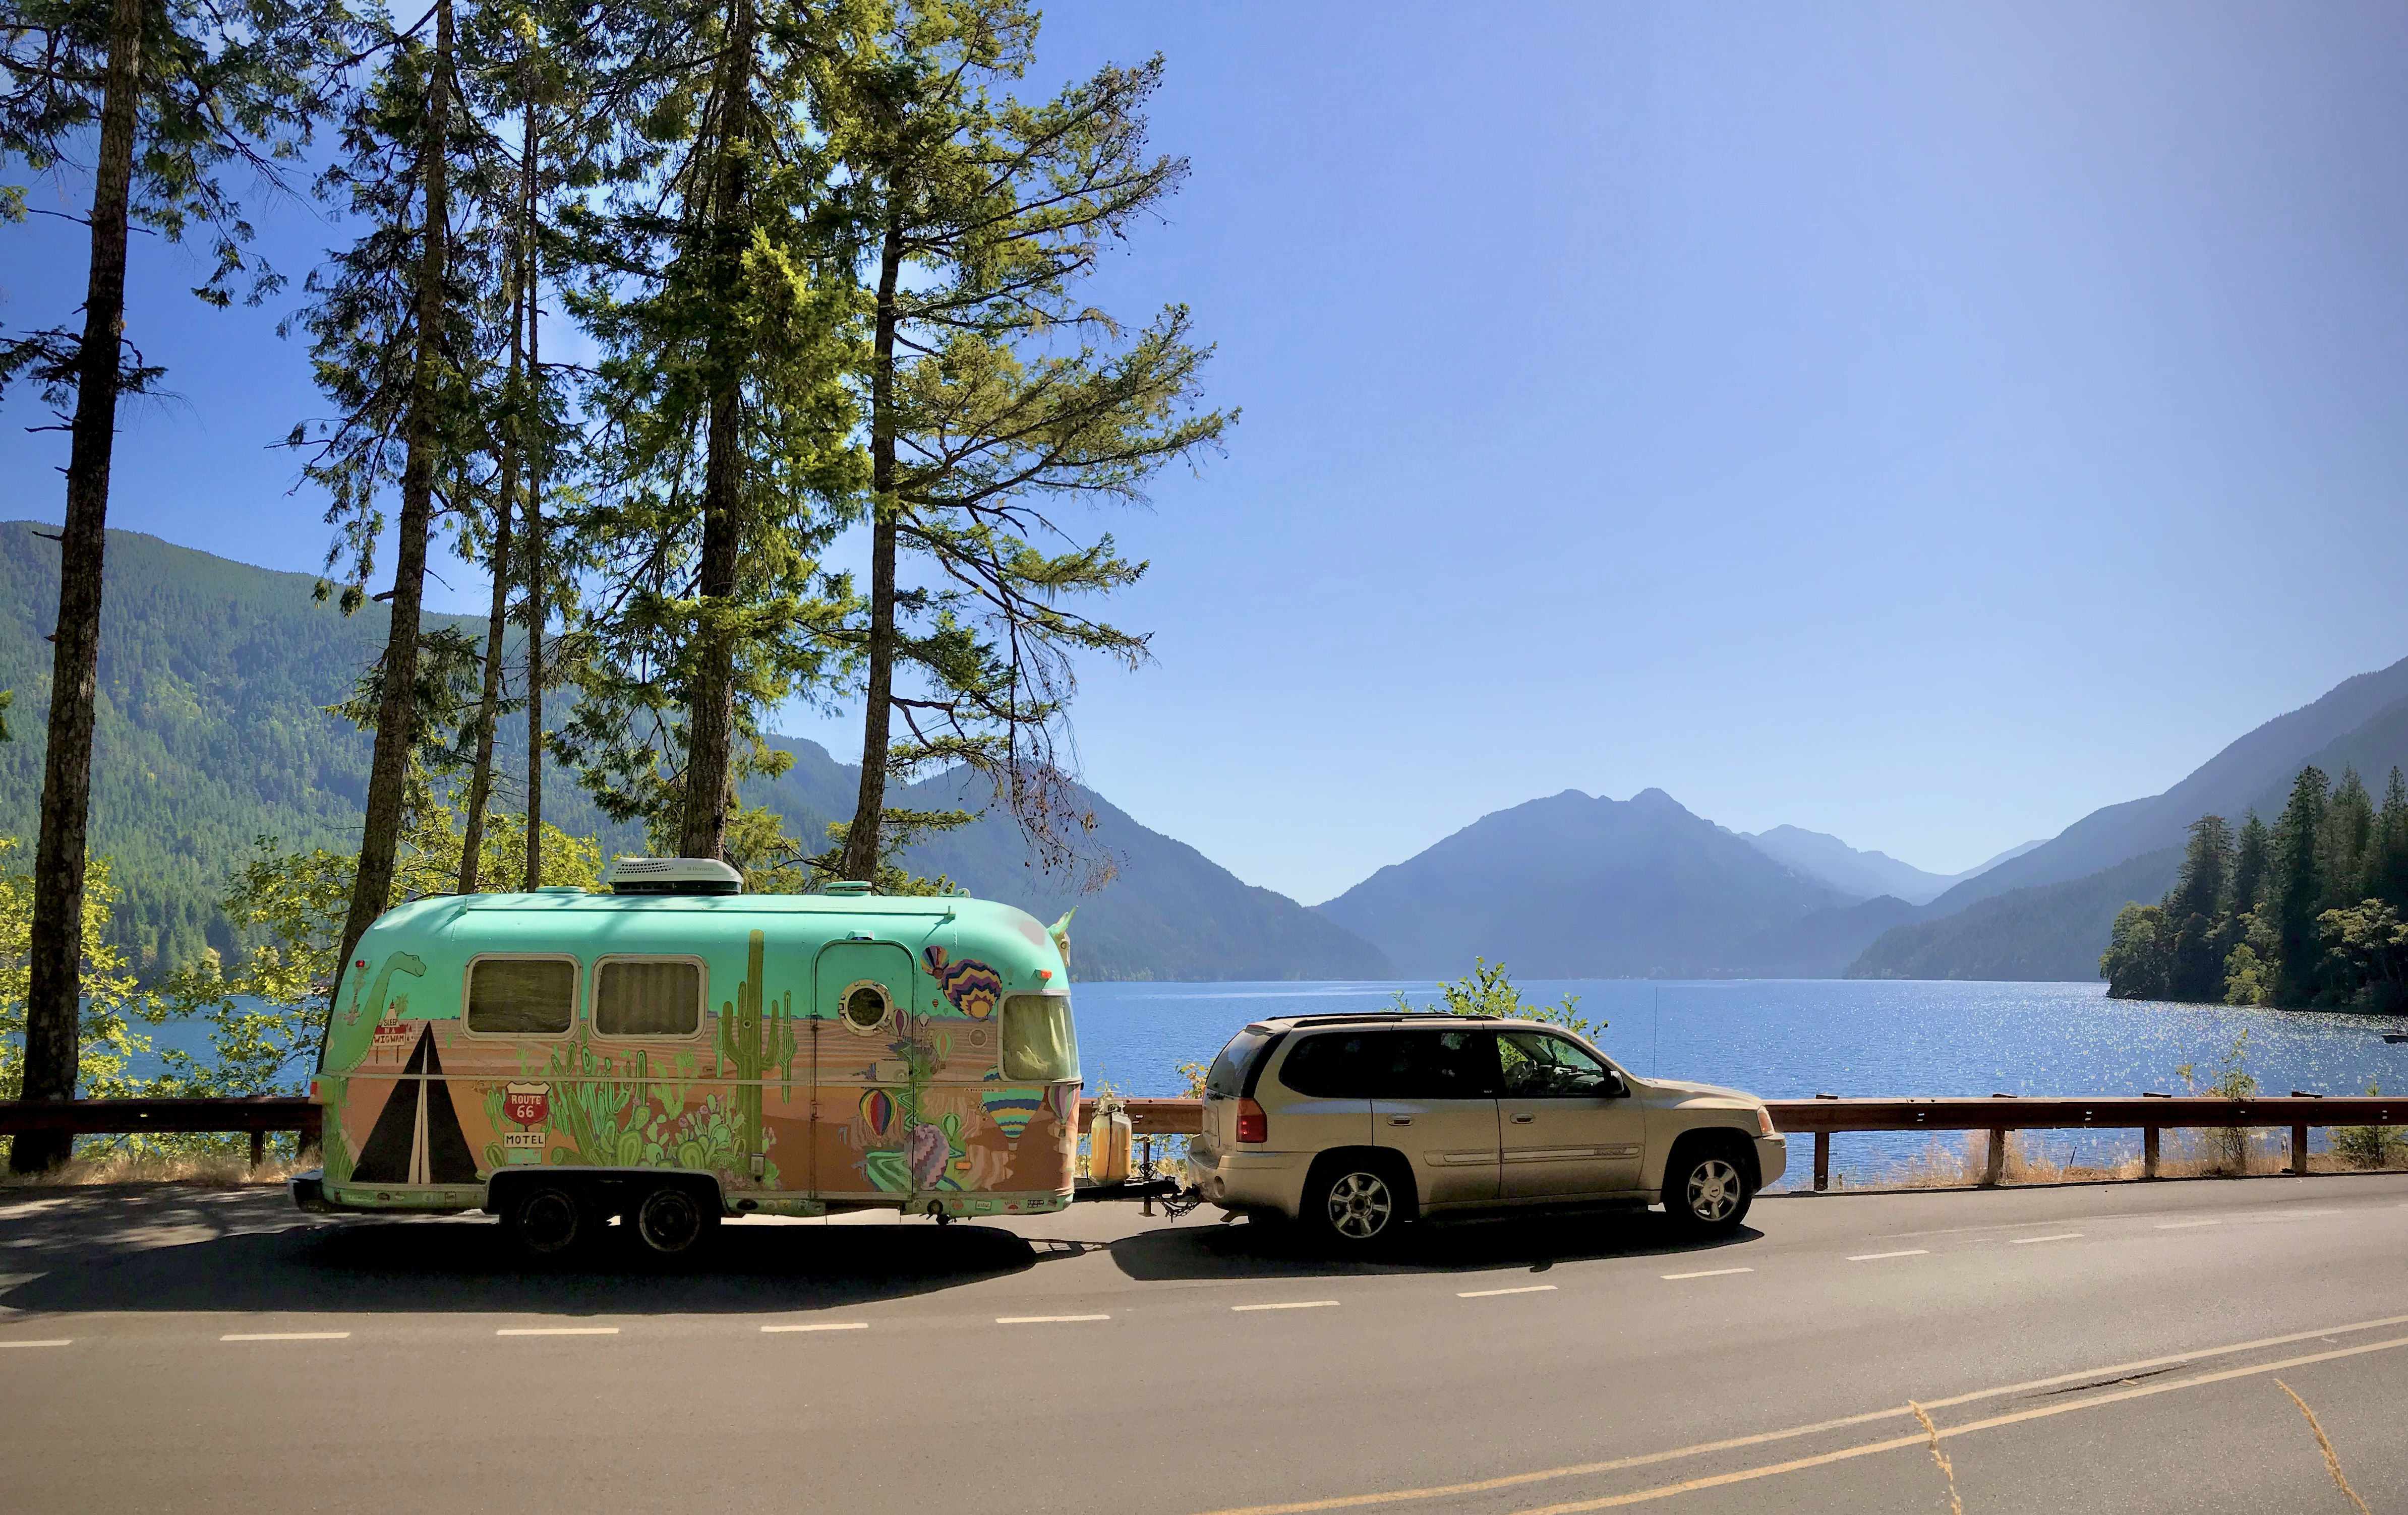 Colorful trailer parked on a lakeshore.